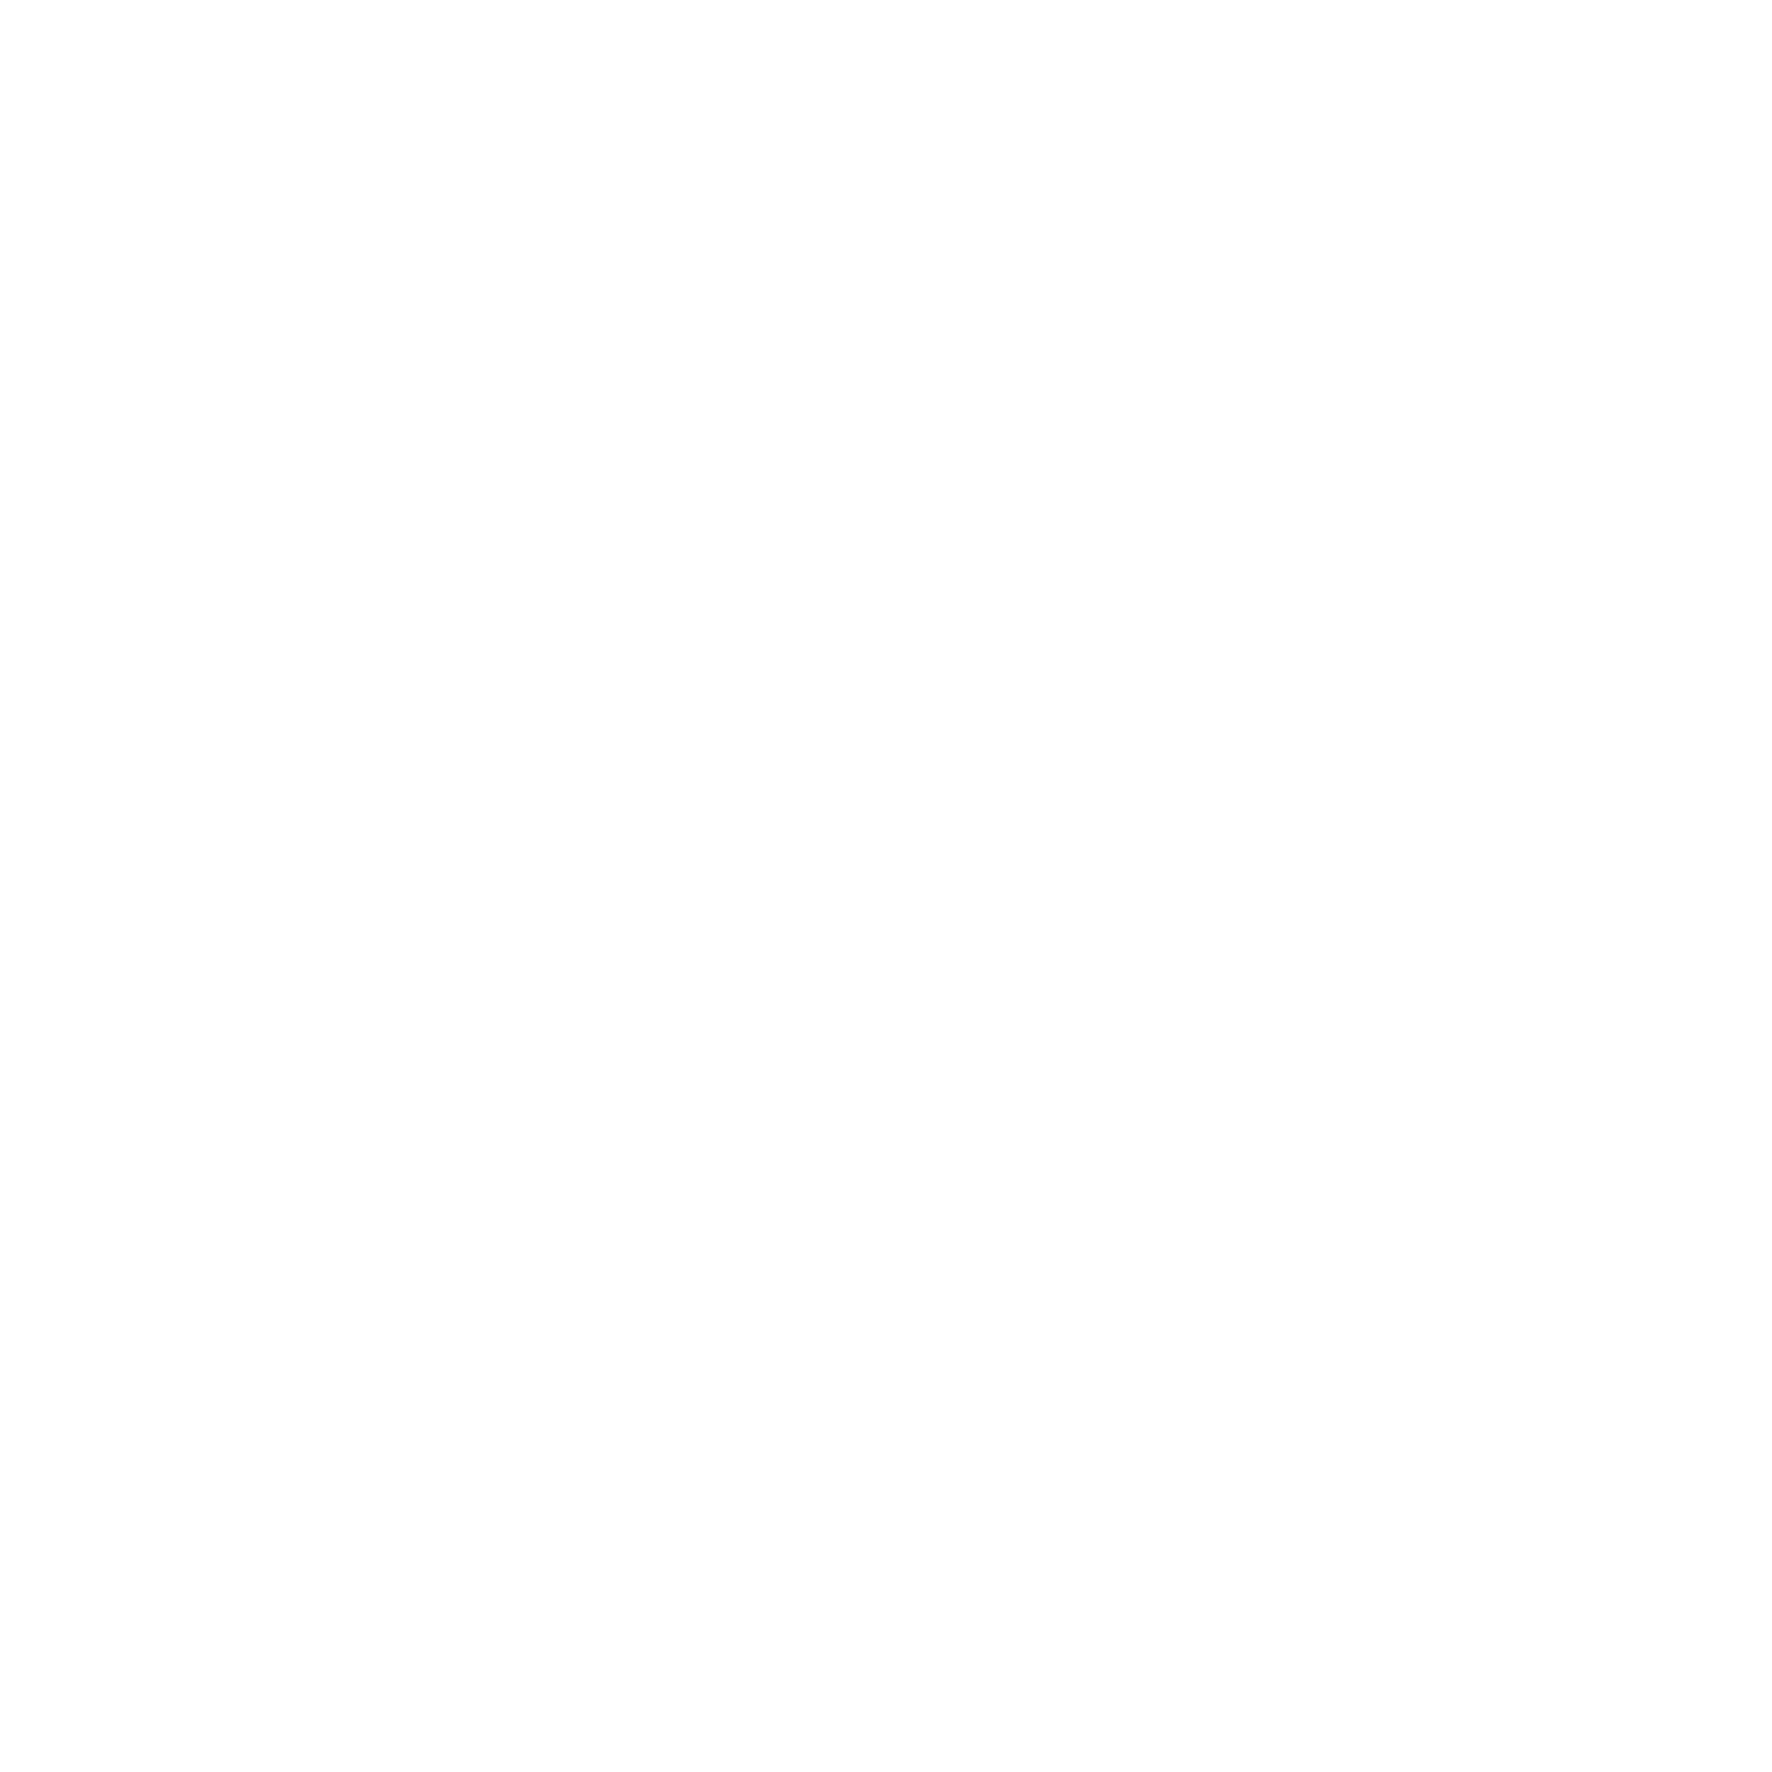 Foot Print Cafes